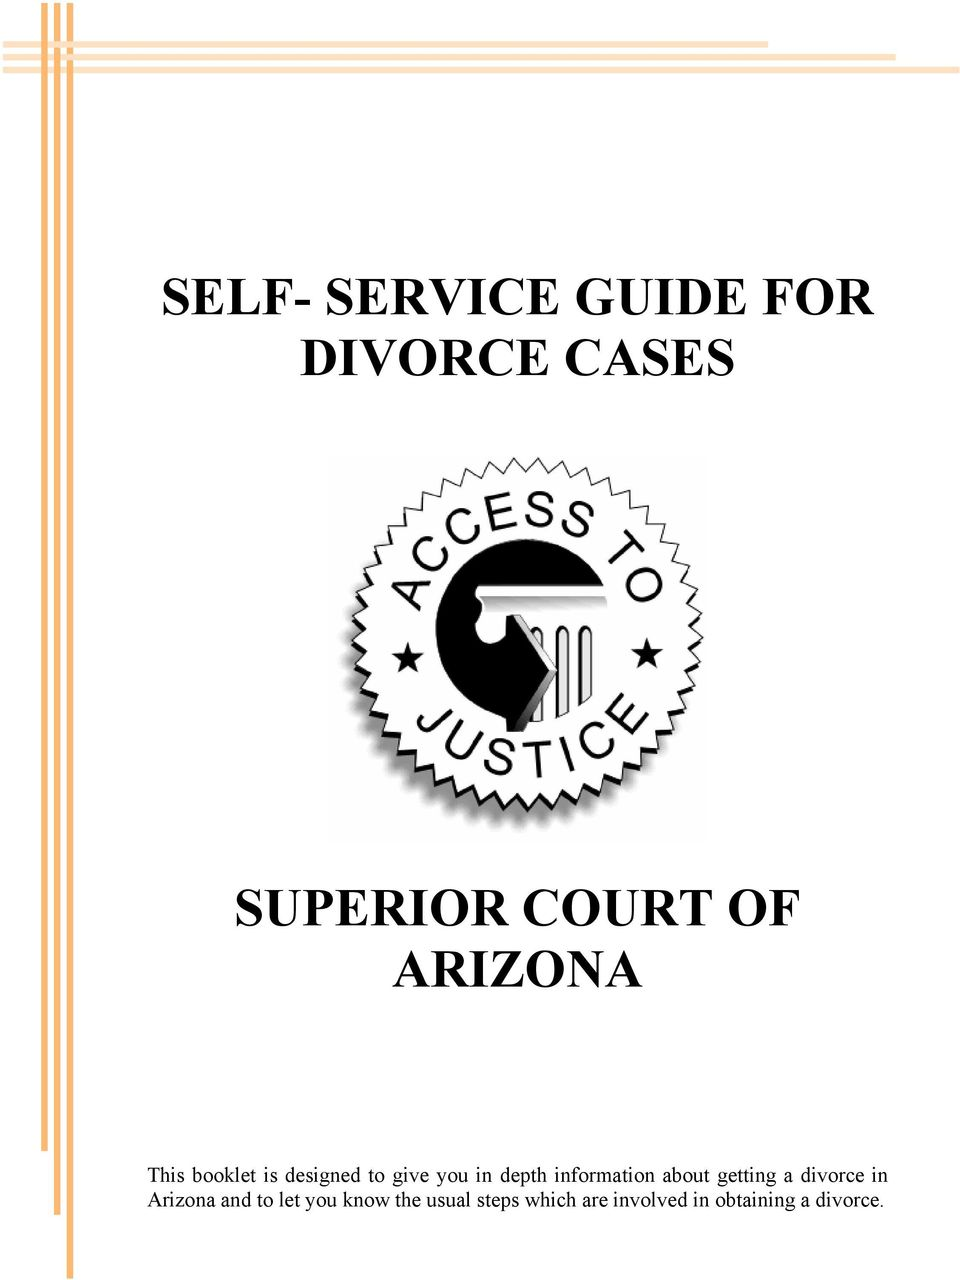 information about getting a divorce in Arizona and to let